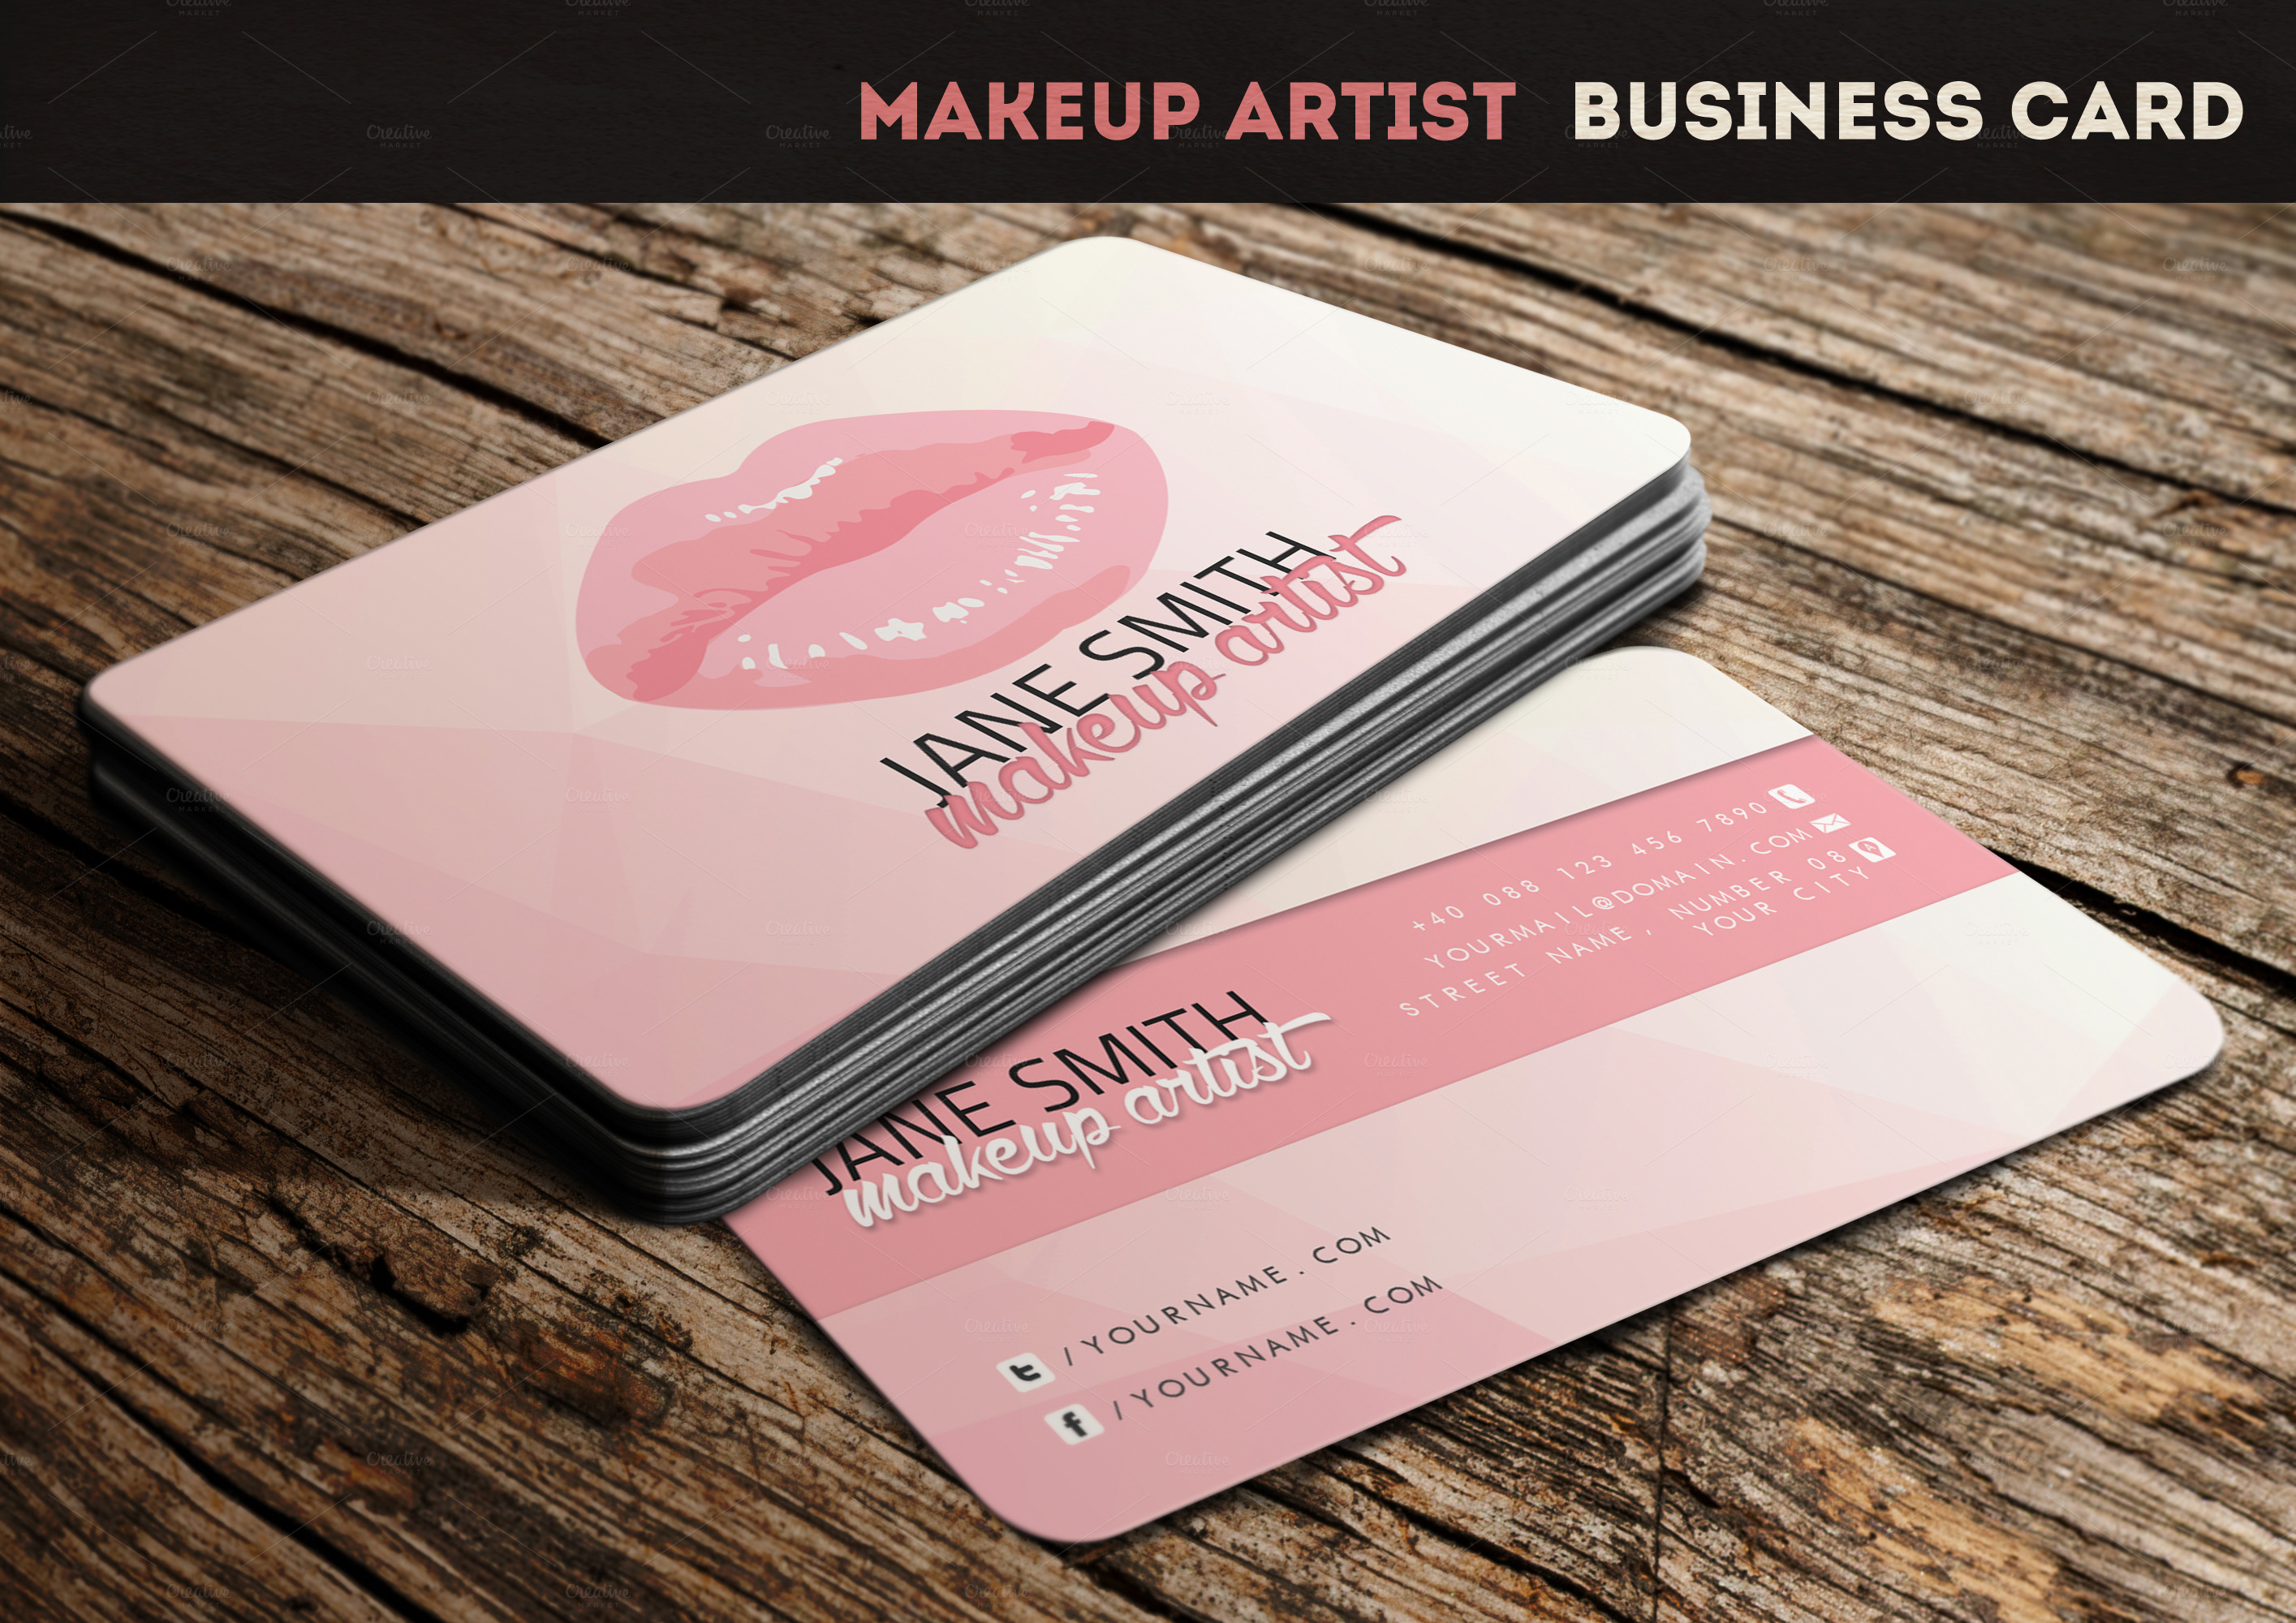 makeup artist business cards DriverLayer Search Engine